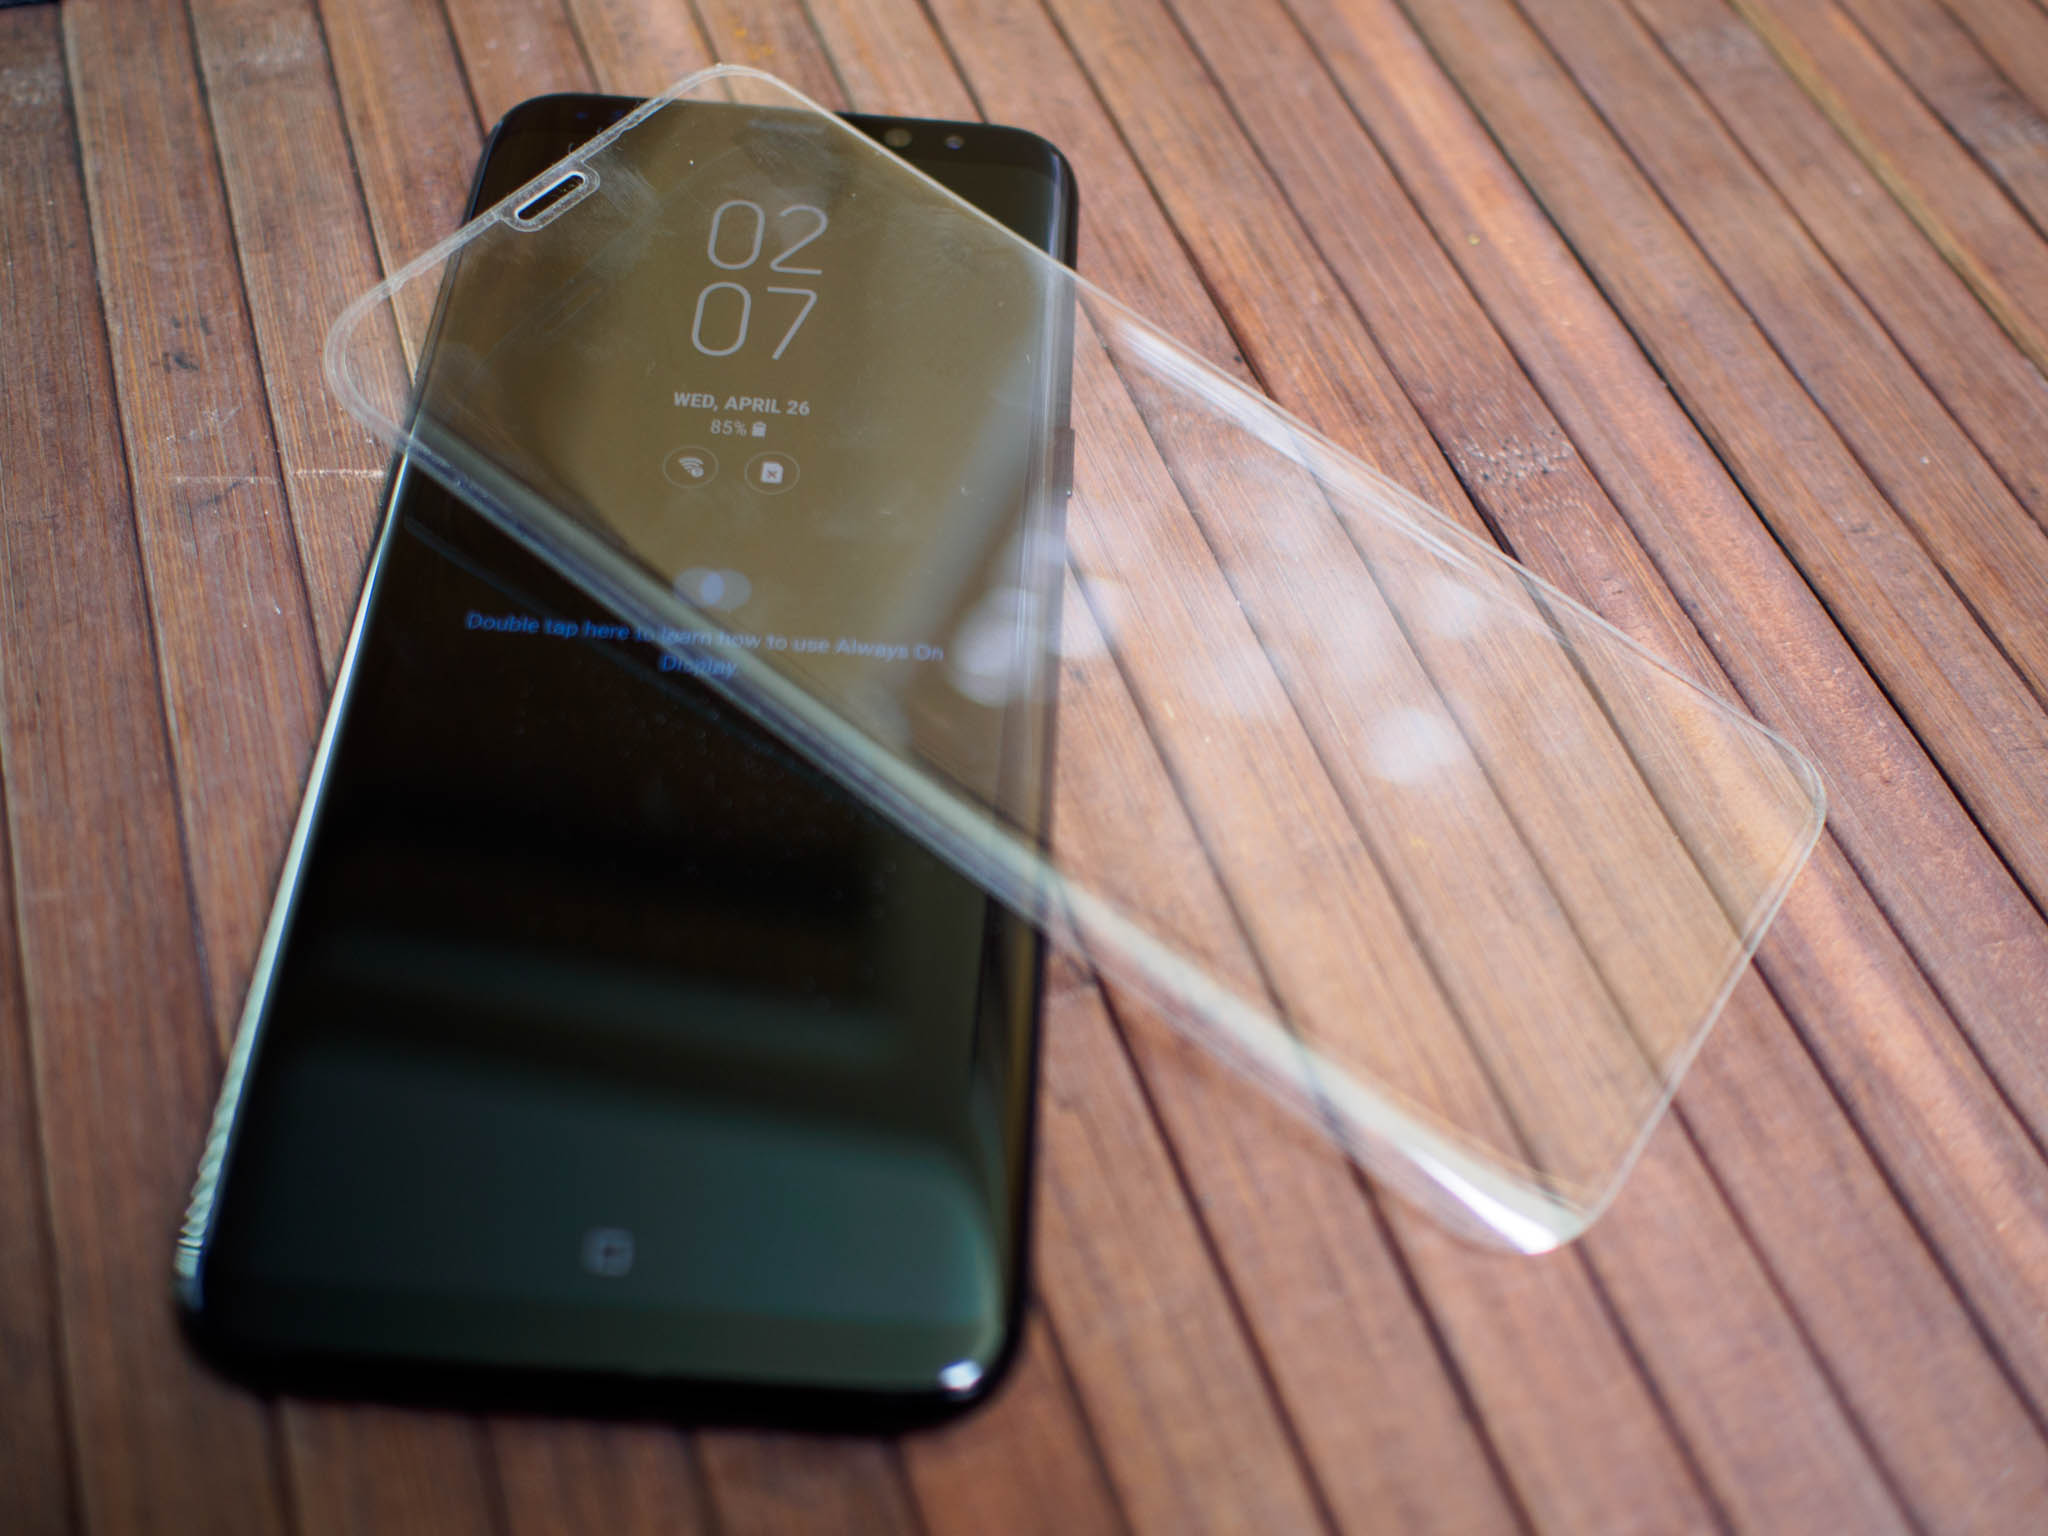 S8 Glas Should You Use A Tempered Glass Screen Protector For Your Galaxy